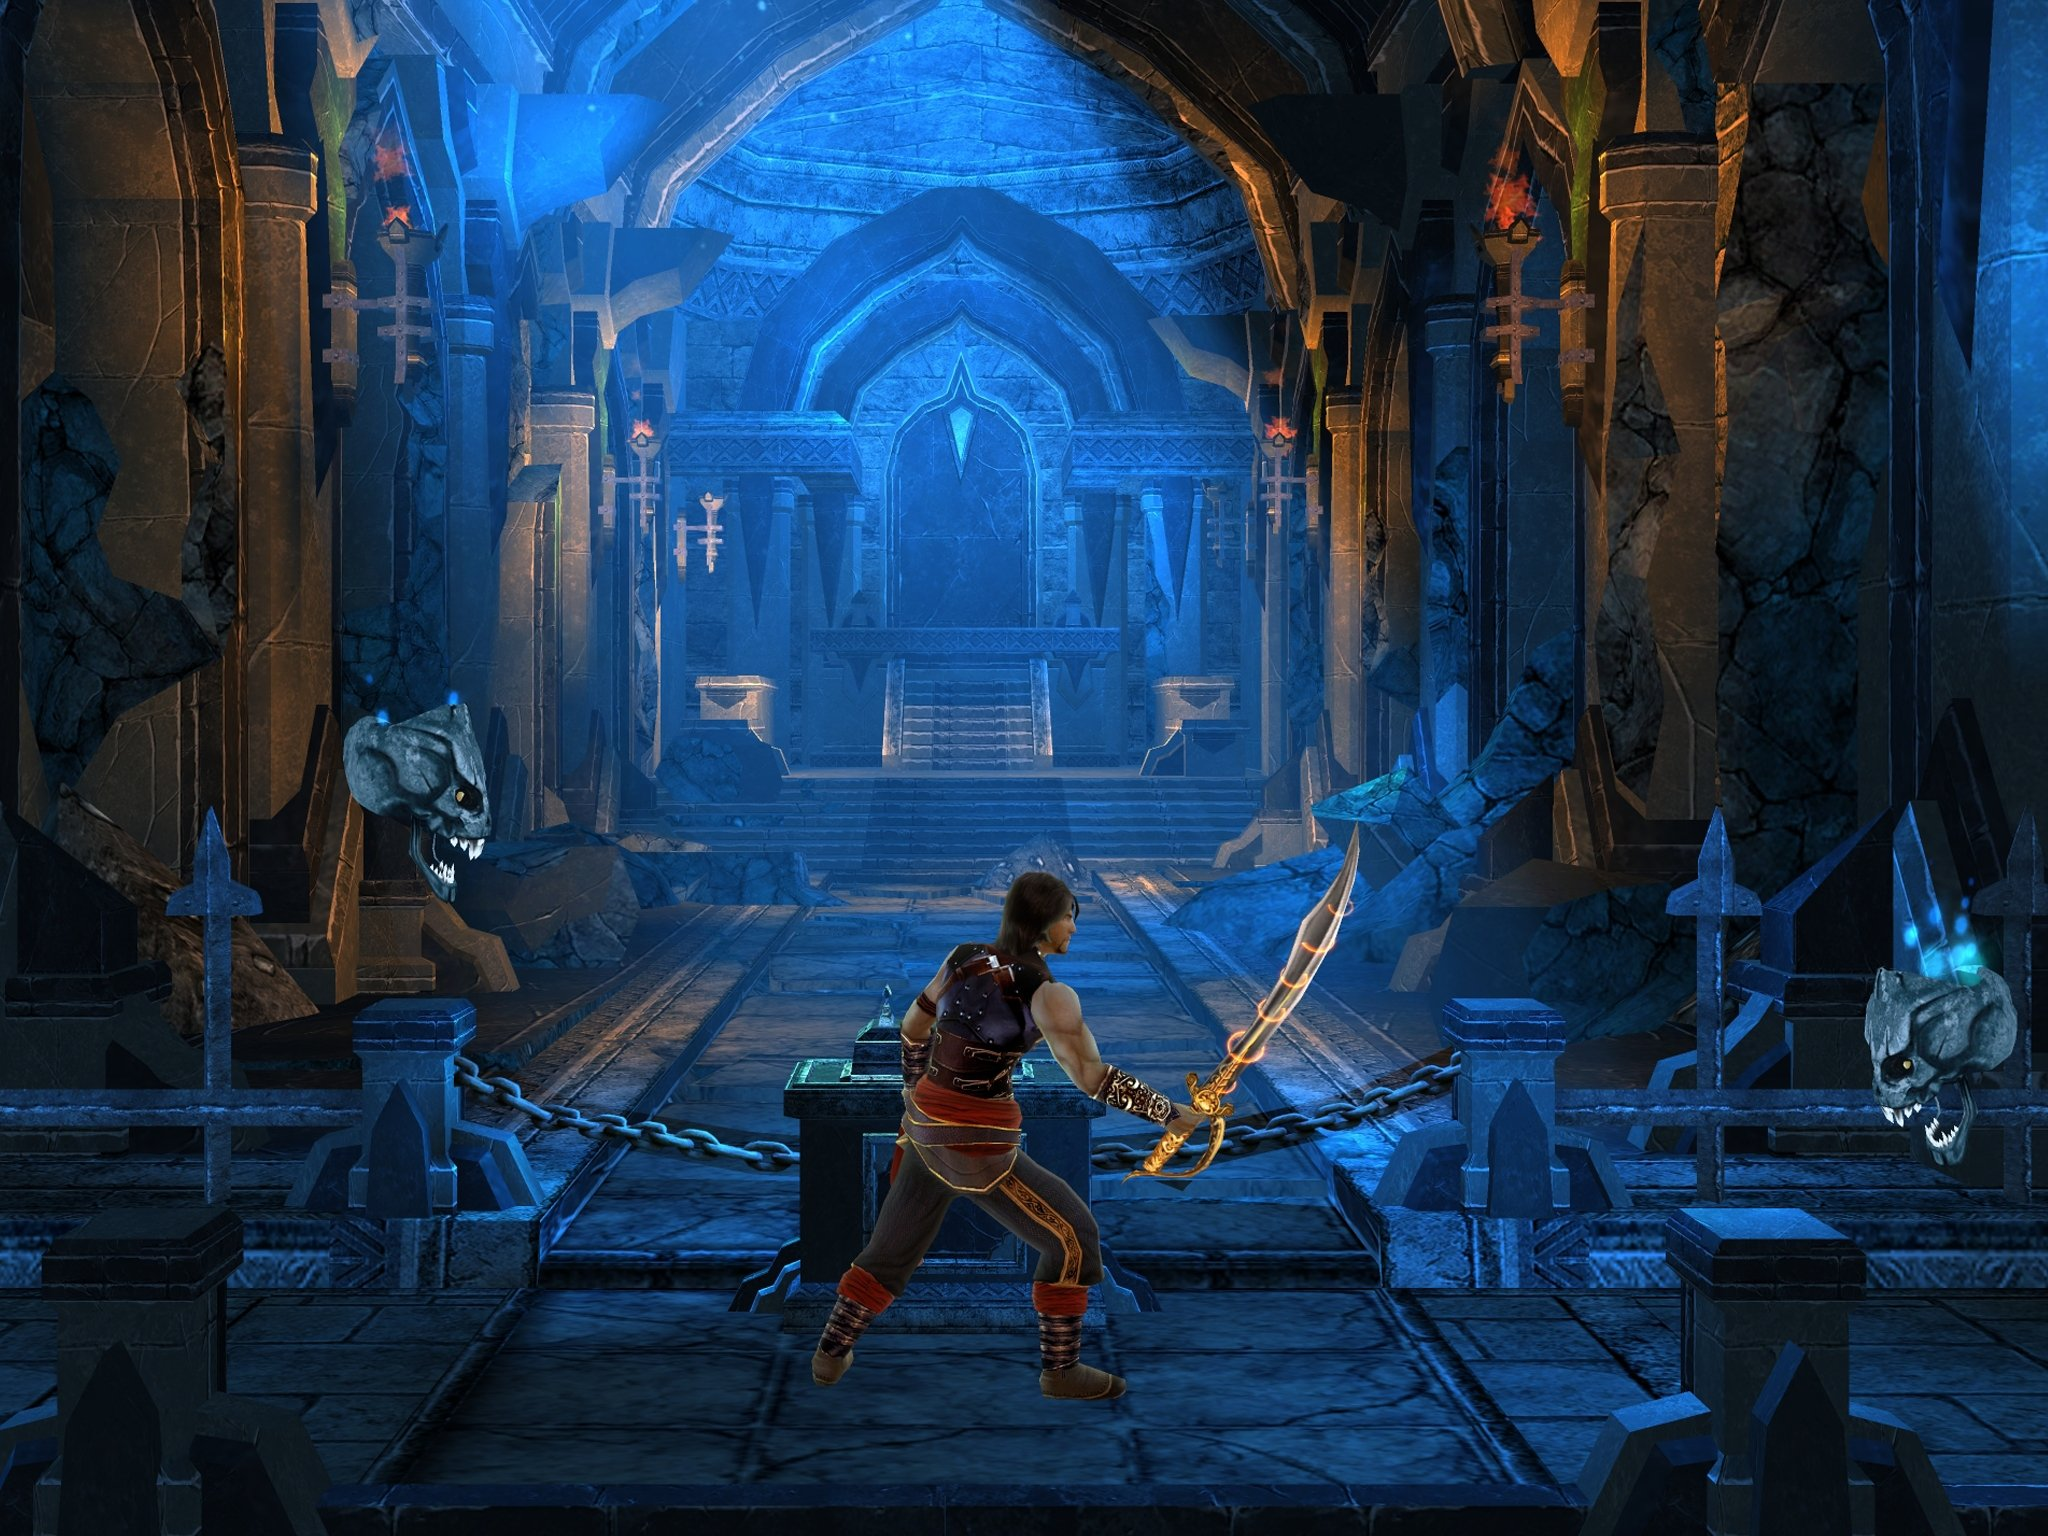 Prince of persia game porn pitchers hentai scenes